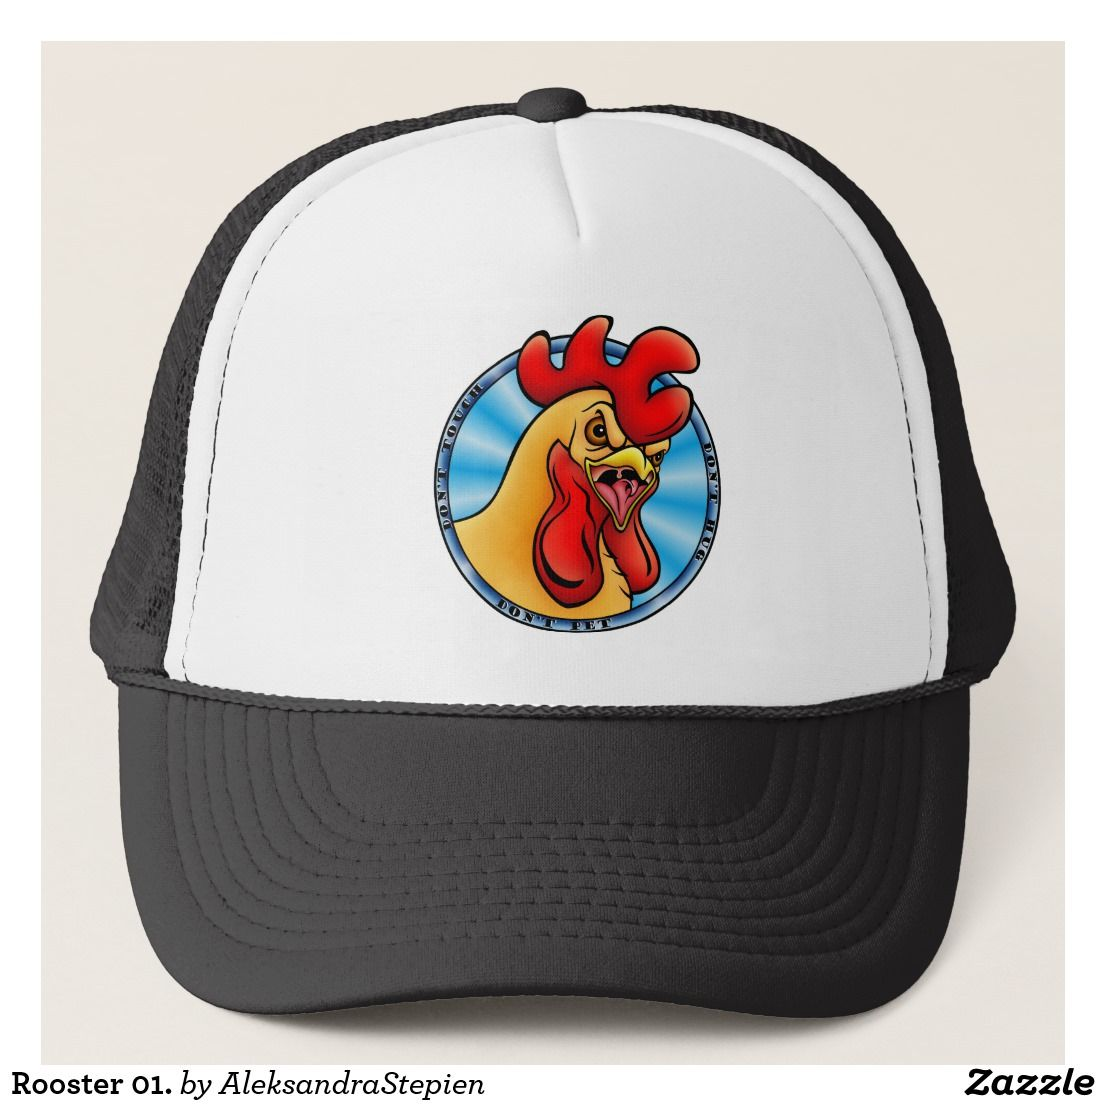 Photo of Rooster 01. trucker hat | Zazzle.com